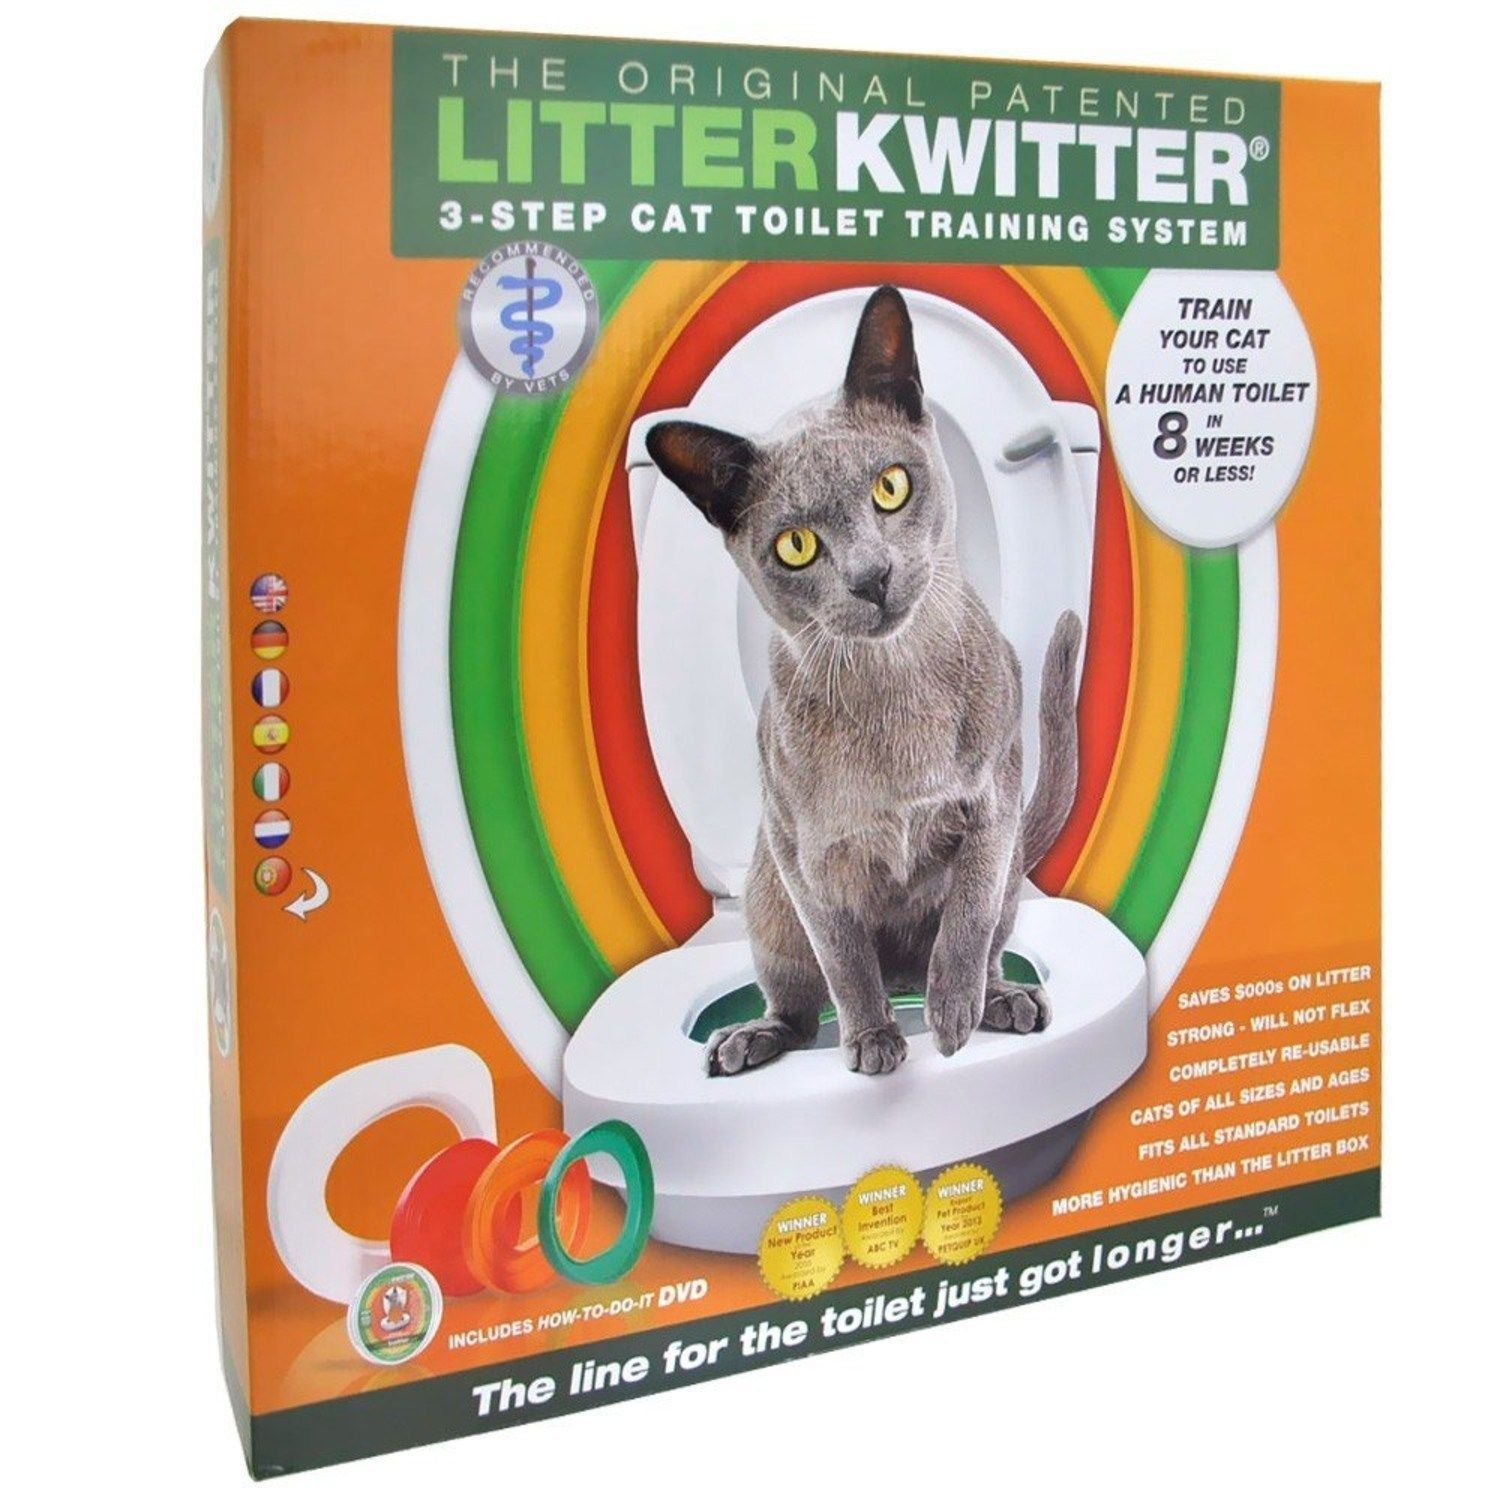 Litter Kwitter Cat Toilet Training System by Litter Kwitter